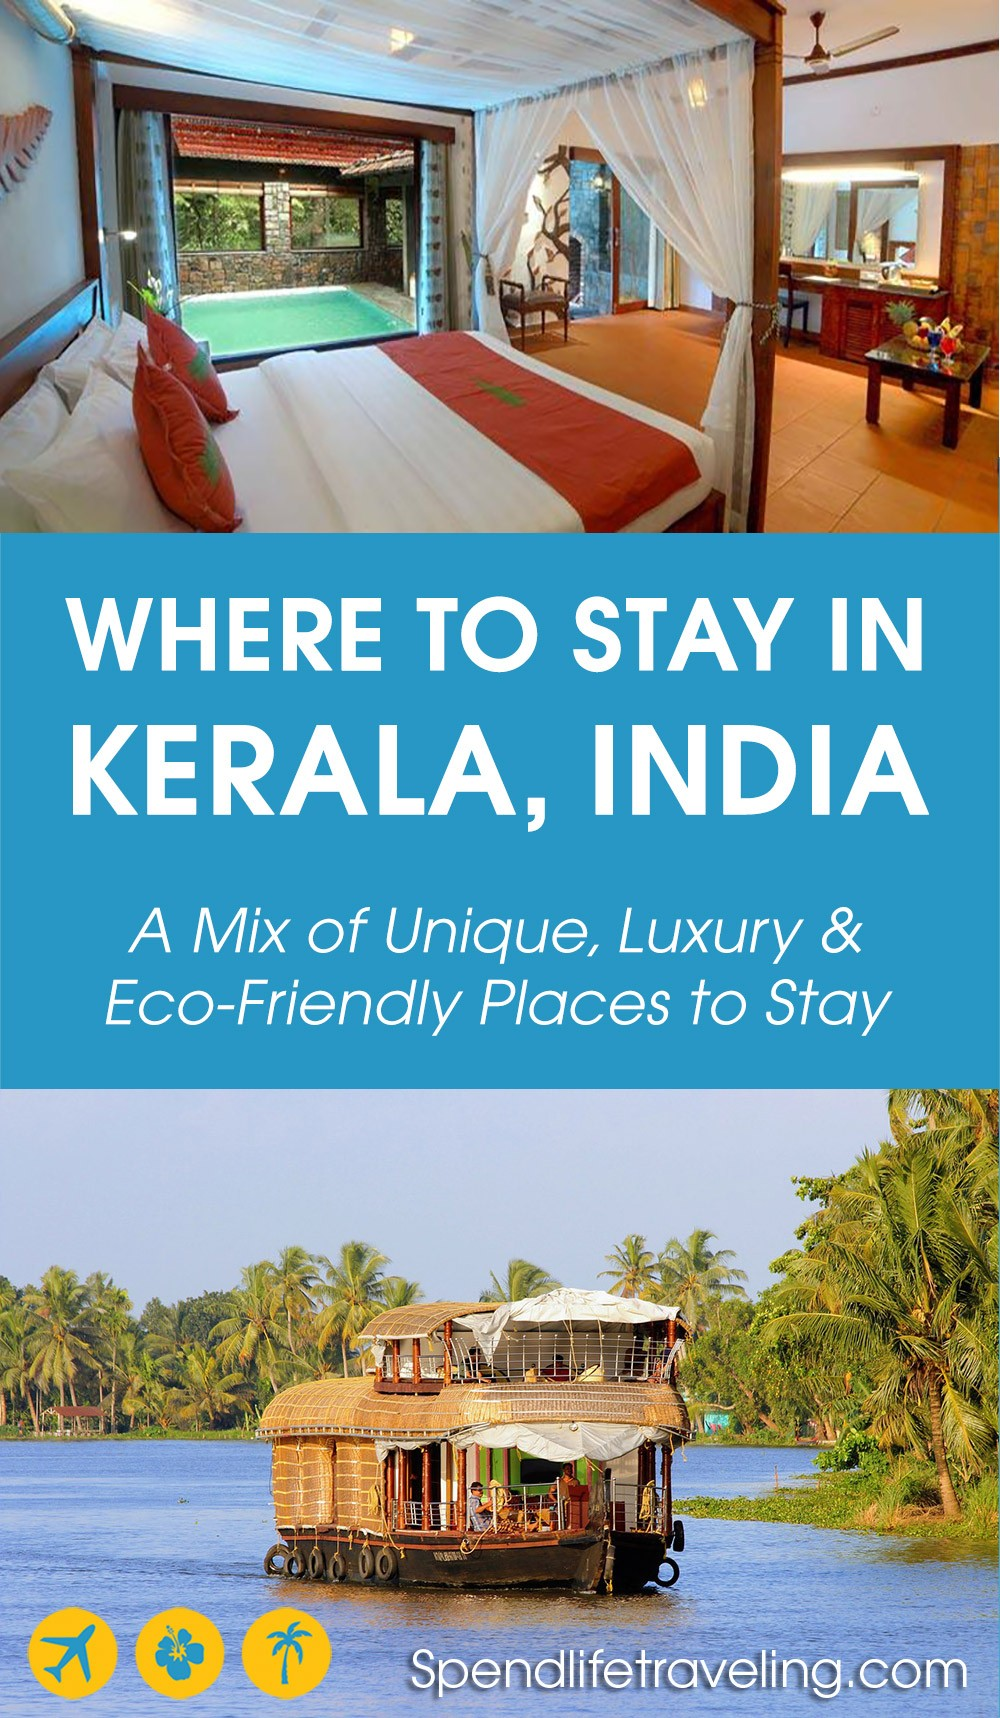 Where to stay in Kerala? A list of some of the best hotels in Kerala: a mix of unique, luxury and eco-friendly places to stay in #Kerala, India. #Indiahotels #travelIndia